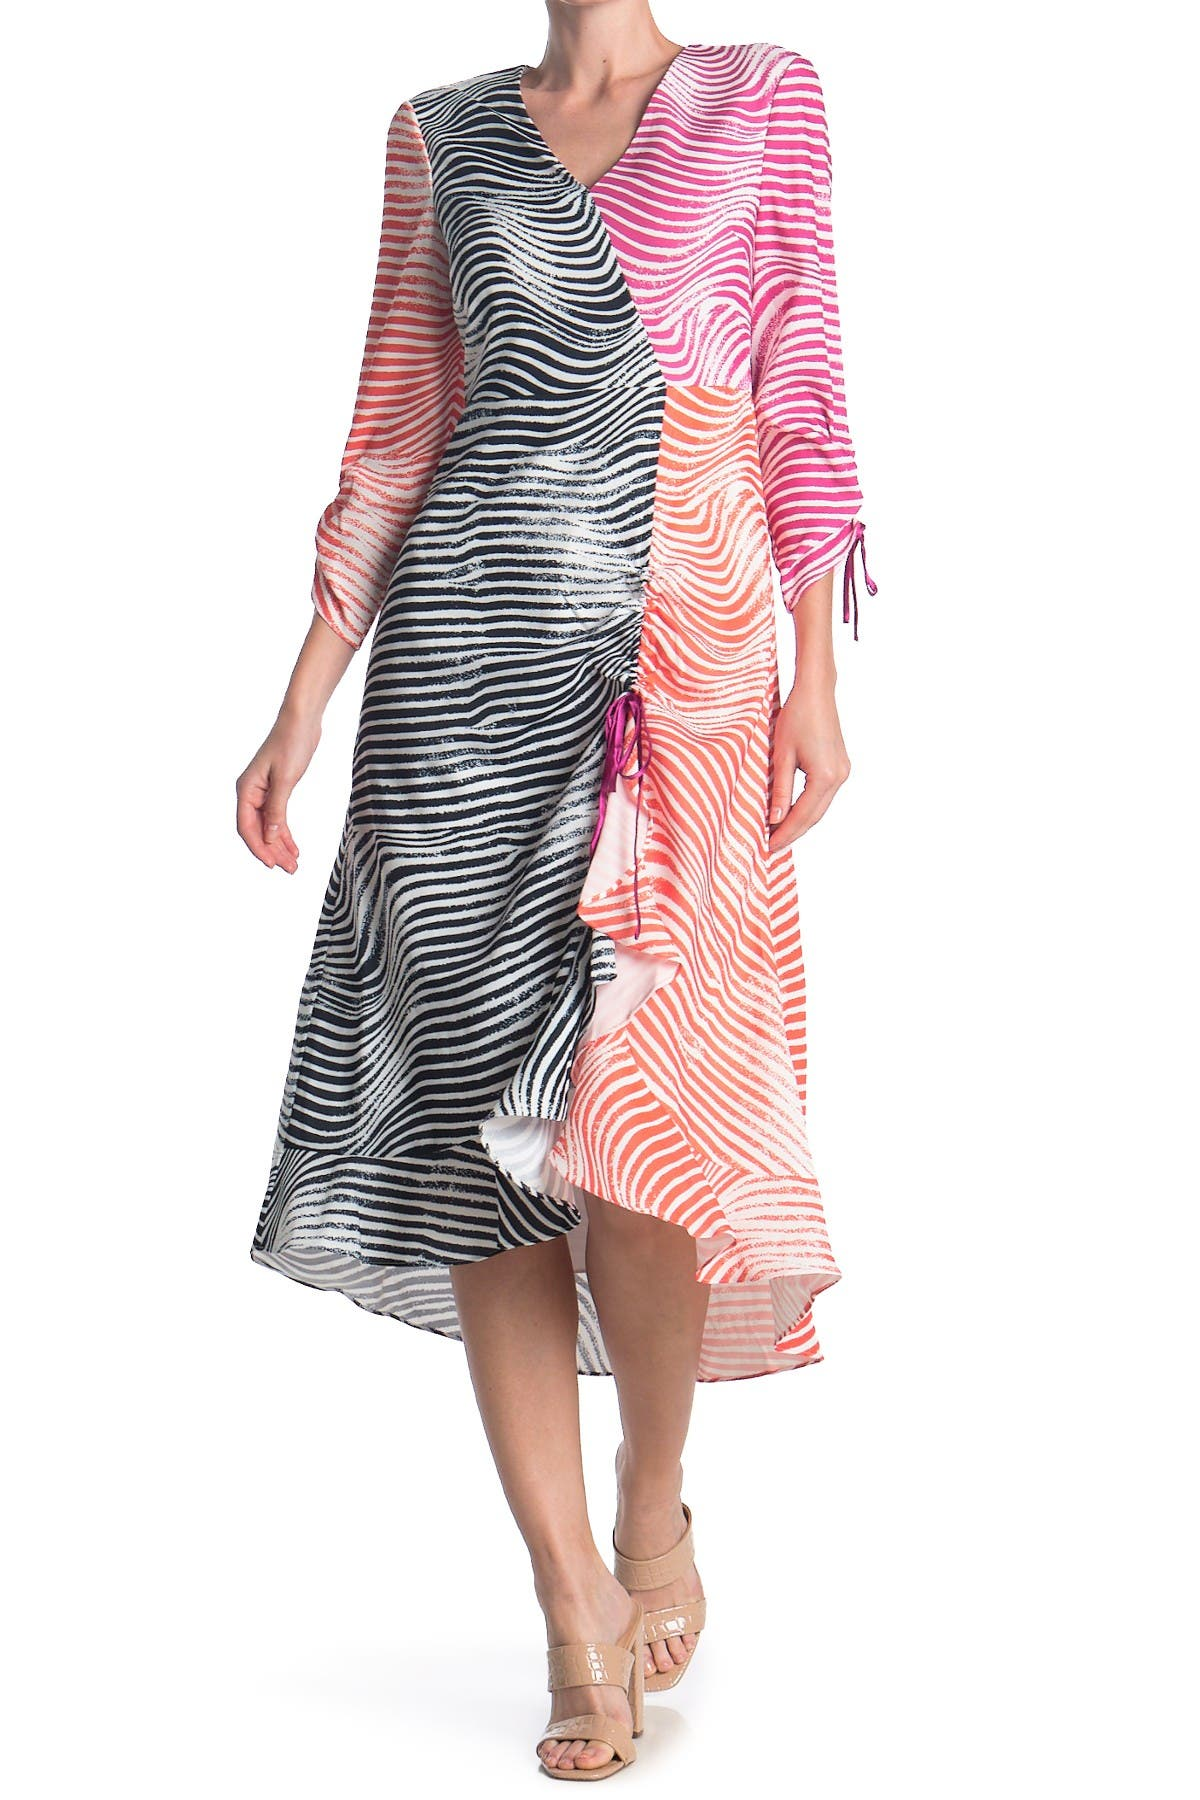 Image of Ted Baker London Wizzoh Zebra Mashup Dress